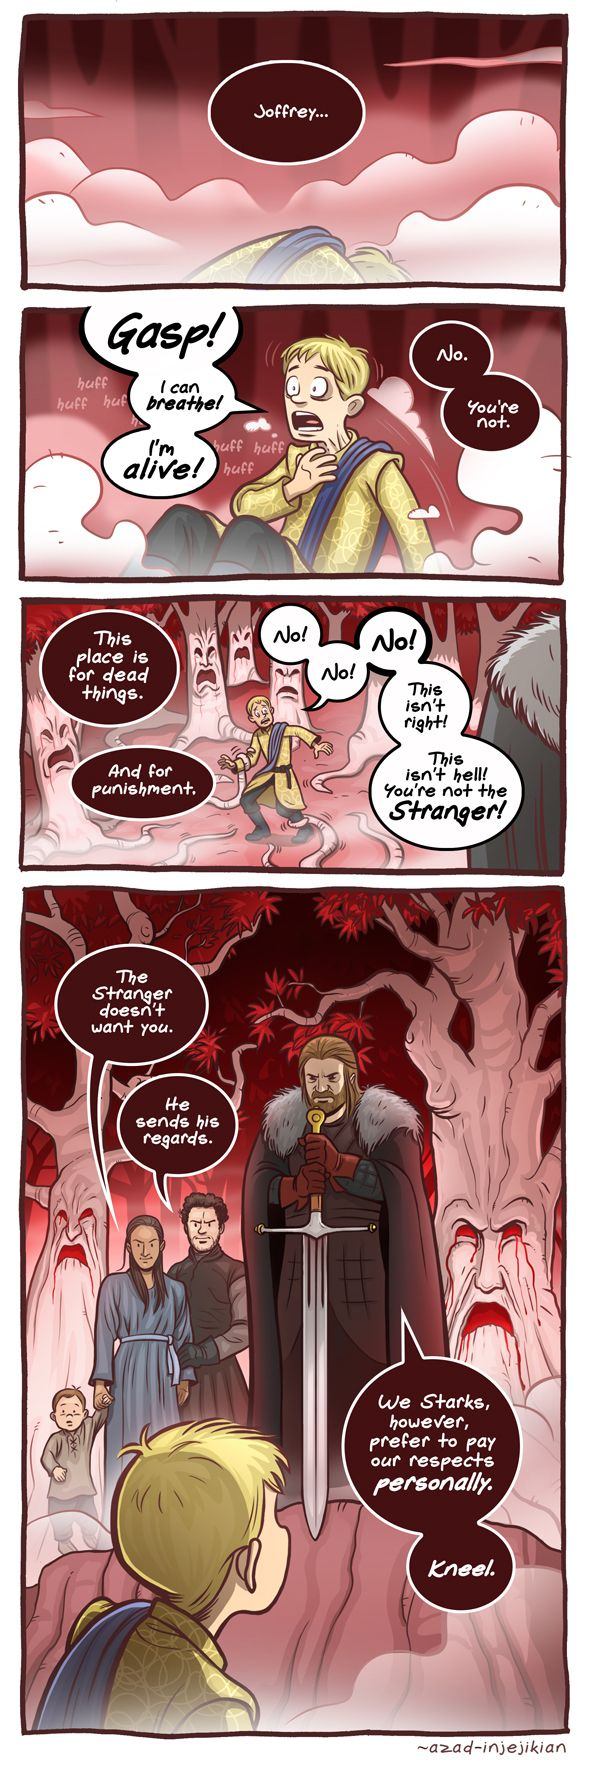 Joff with his head! - Game of Thrones by Azad-Injejikian.deviantart.com on @DeviantArt